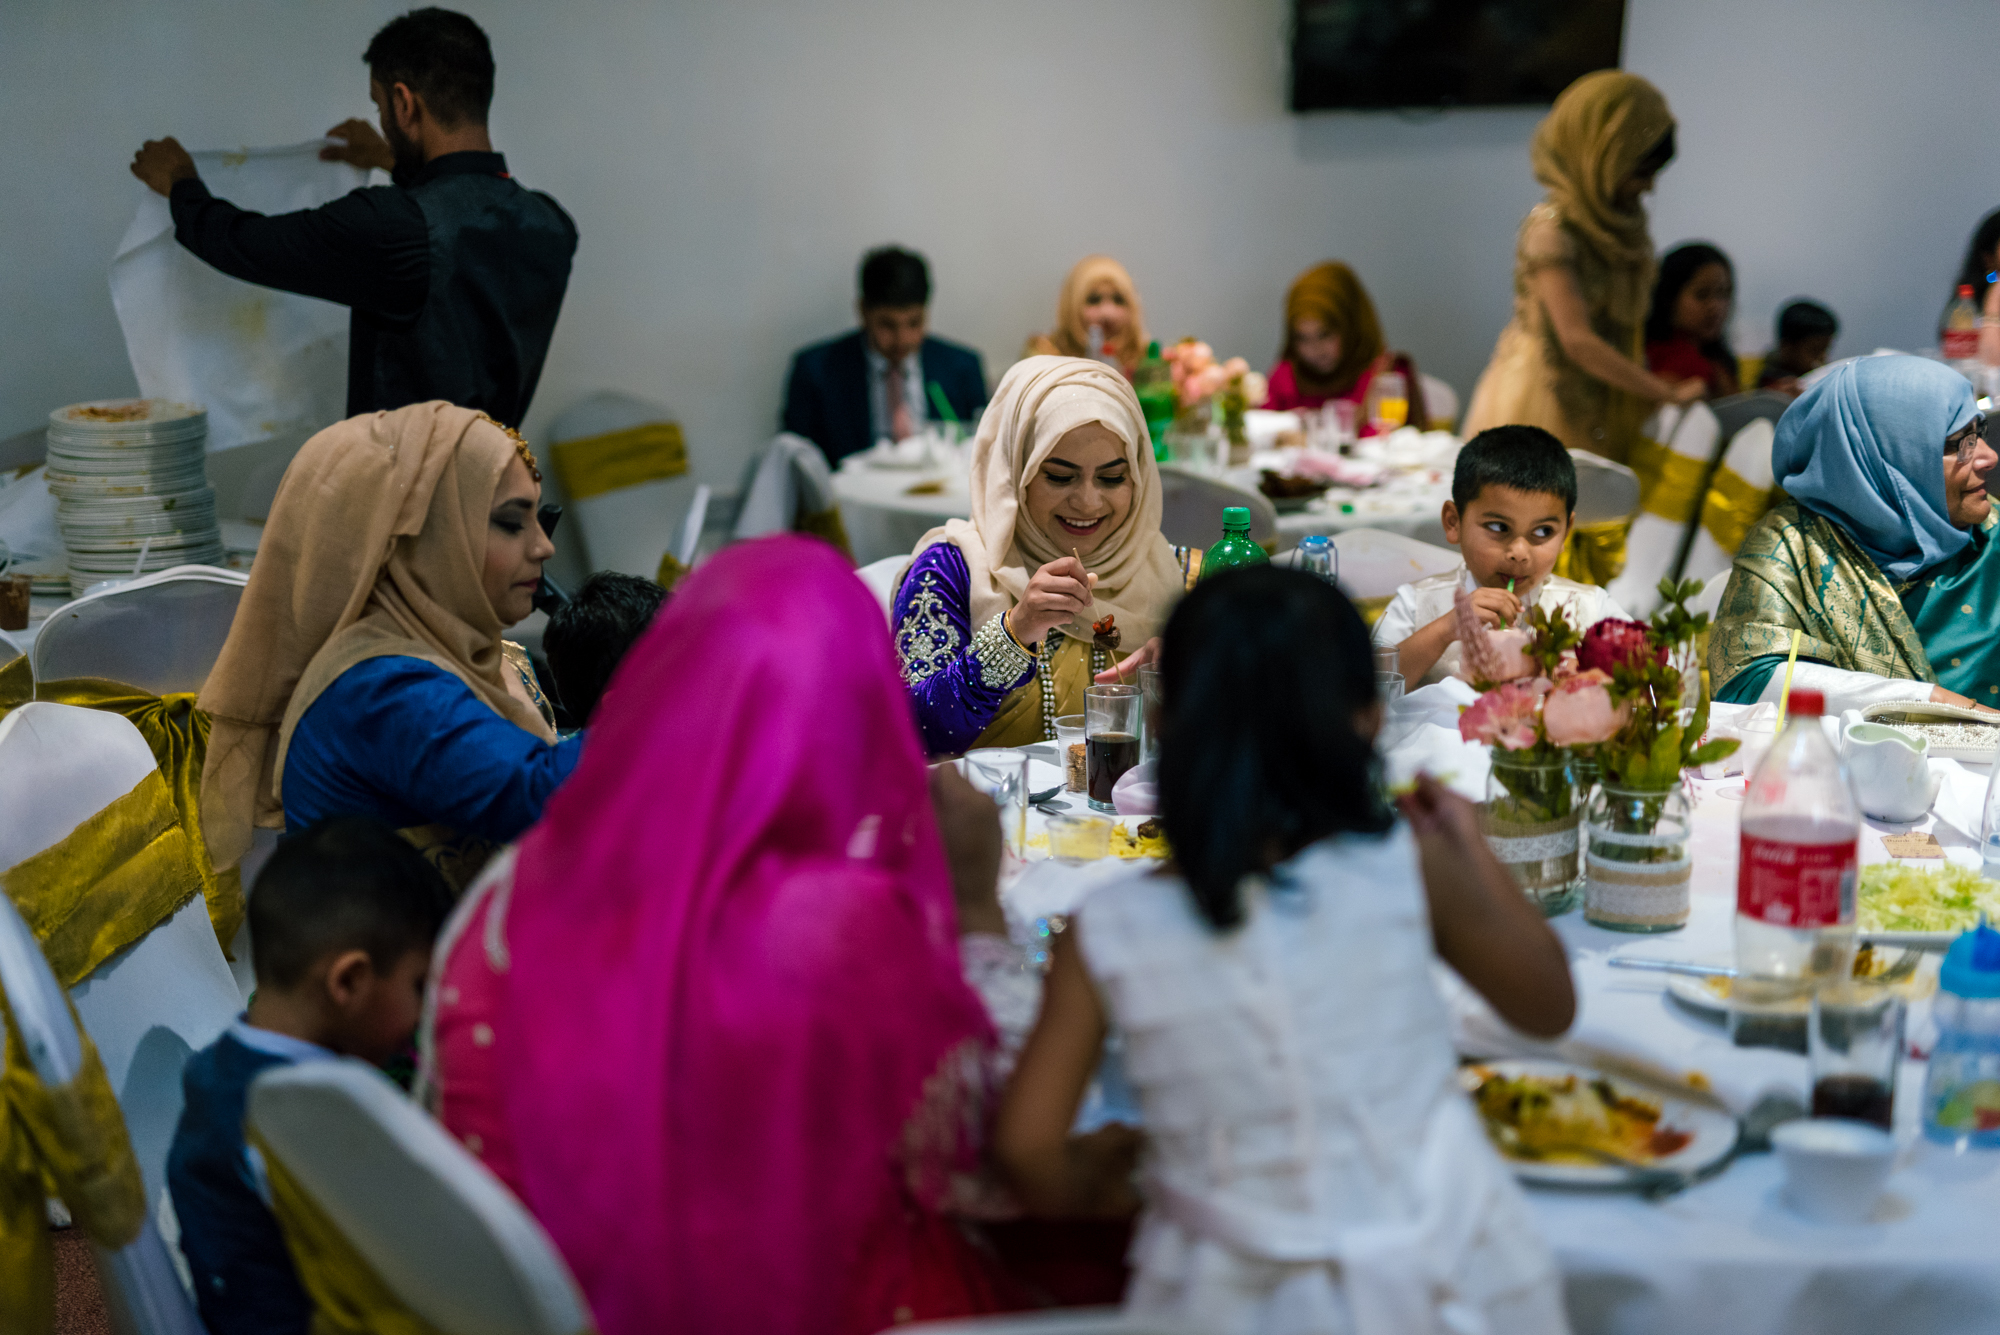 wedding guests sit round a table eating indian wedding food